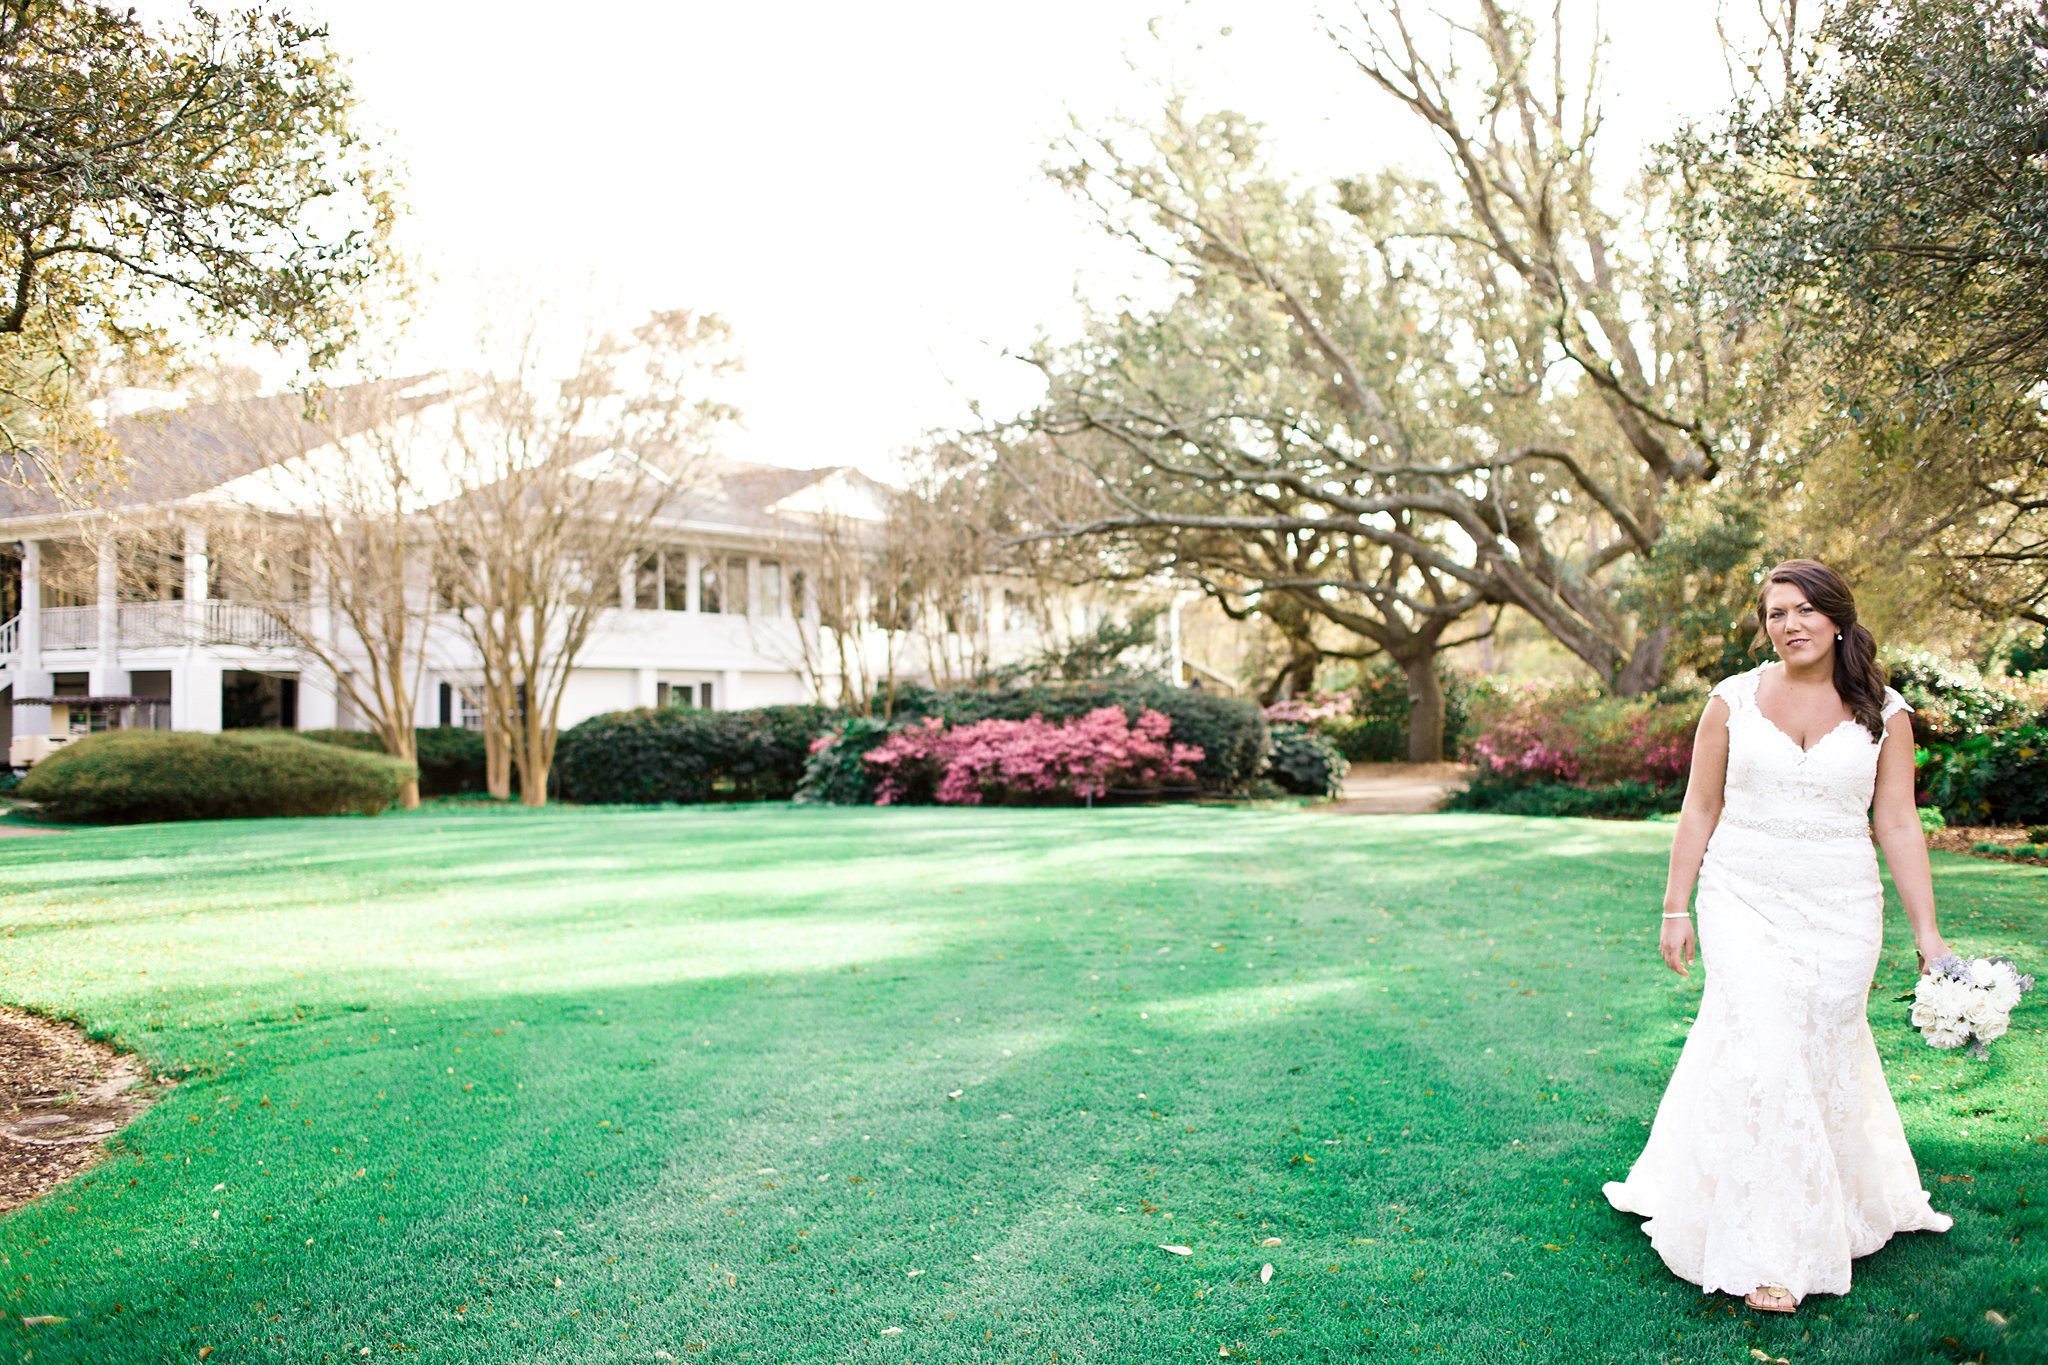 litchfield-golf-country-club-bridal-session-pawleys-island-sc-photos_0102.jpg